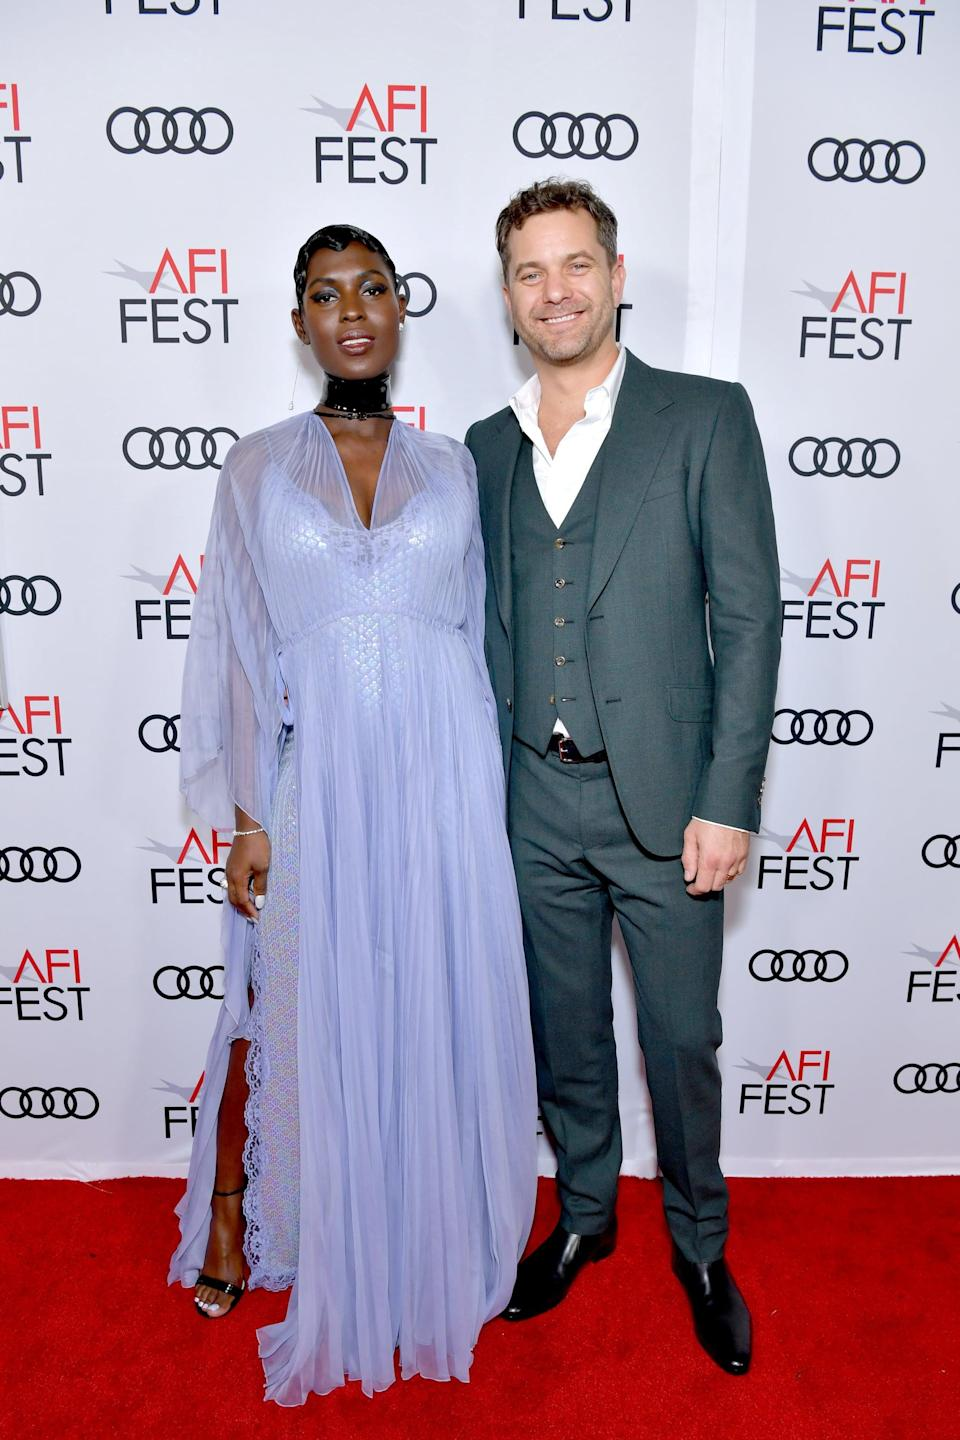 "<p>After secretly tying the knot, <strong>Us Weekly</strong> confirmed in December 2019 that <a href=""https://www.popsugar.com/celebrity/jodie-turner-smith-pregnant-with-first-child-47041962"" class=""link rapid-noclick-resp"" rel=""nofollow noopener"" target=""_blank"" data-ylk=""slk:the couple is expecting their first child together"">the couple is expecting their first child together</a>. </p>"